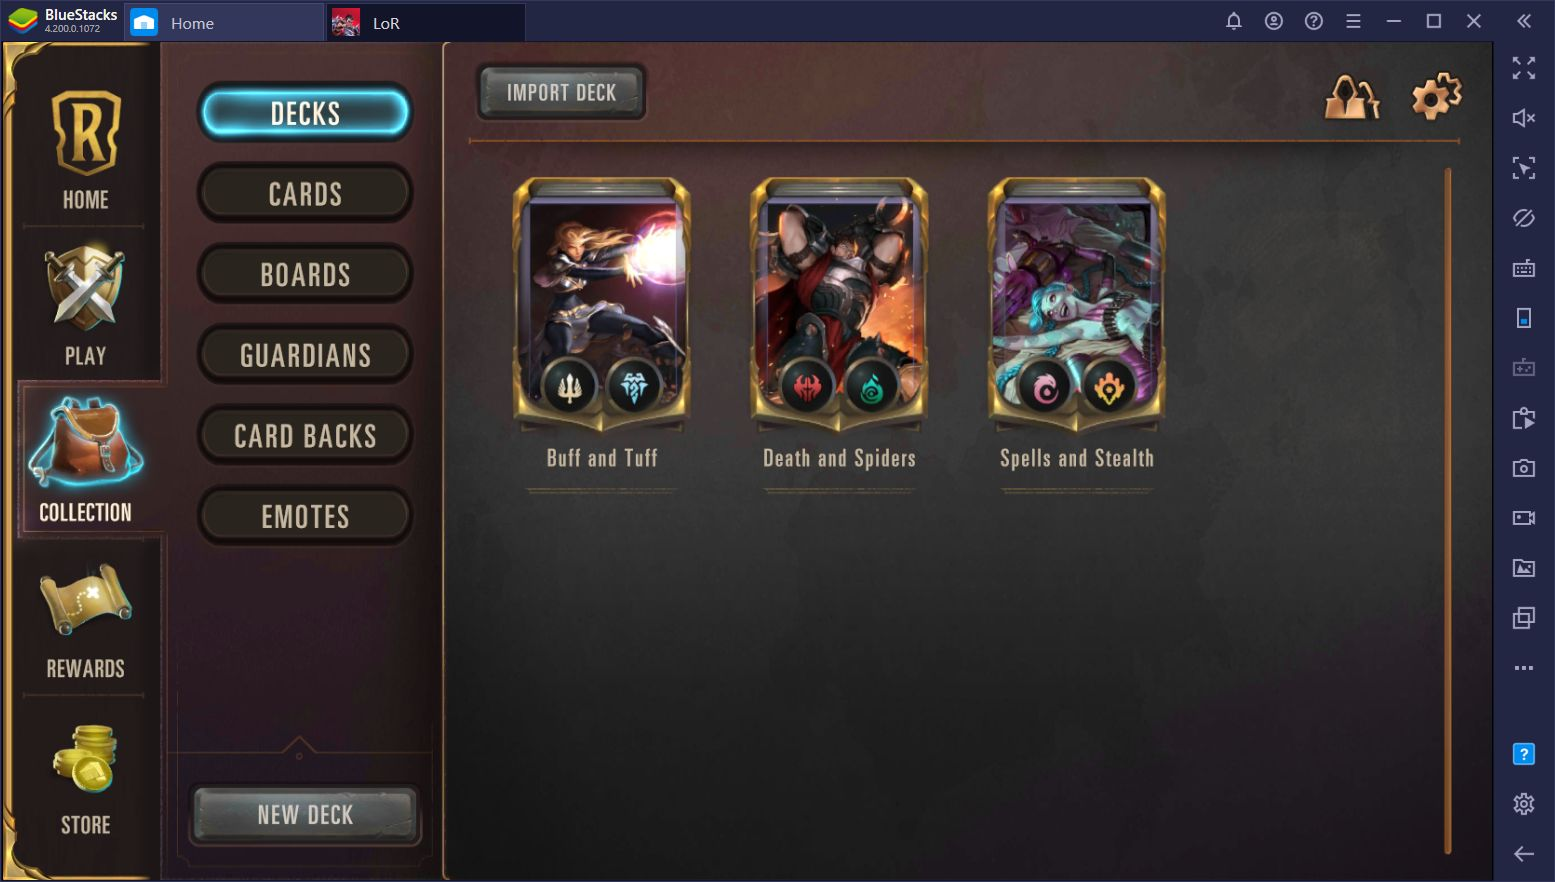 Legends of Runeterra on PC – The Best Deck Combinations (Updated April 2020)